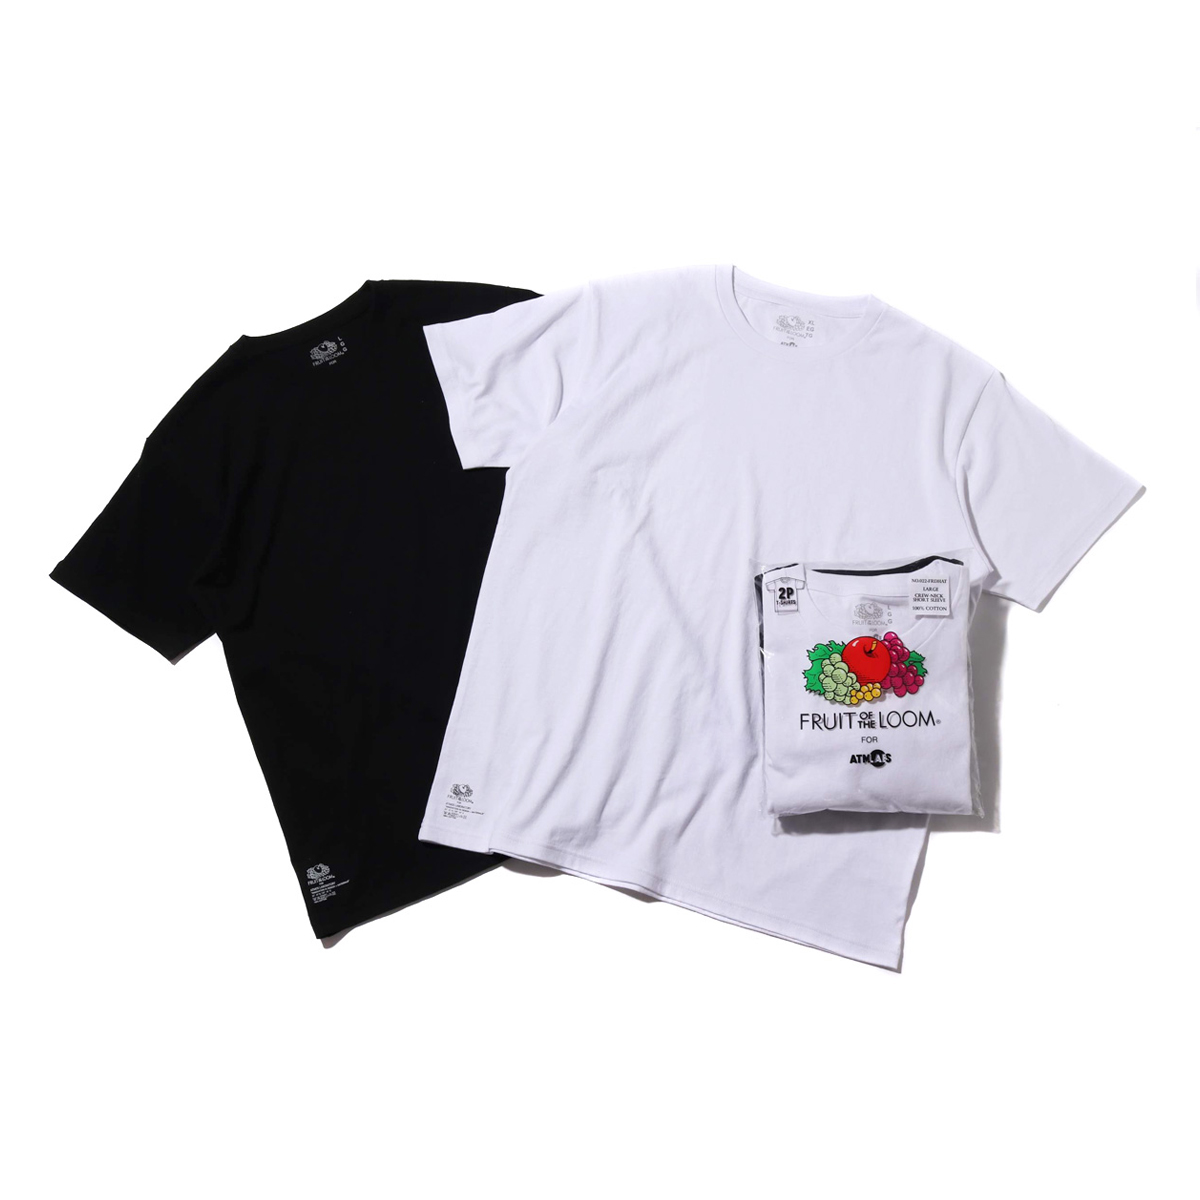 FRUIT OF THE LOOM x ATMOS LAB CREW NECK PACK TEE